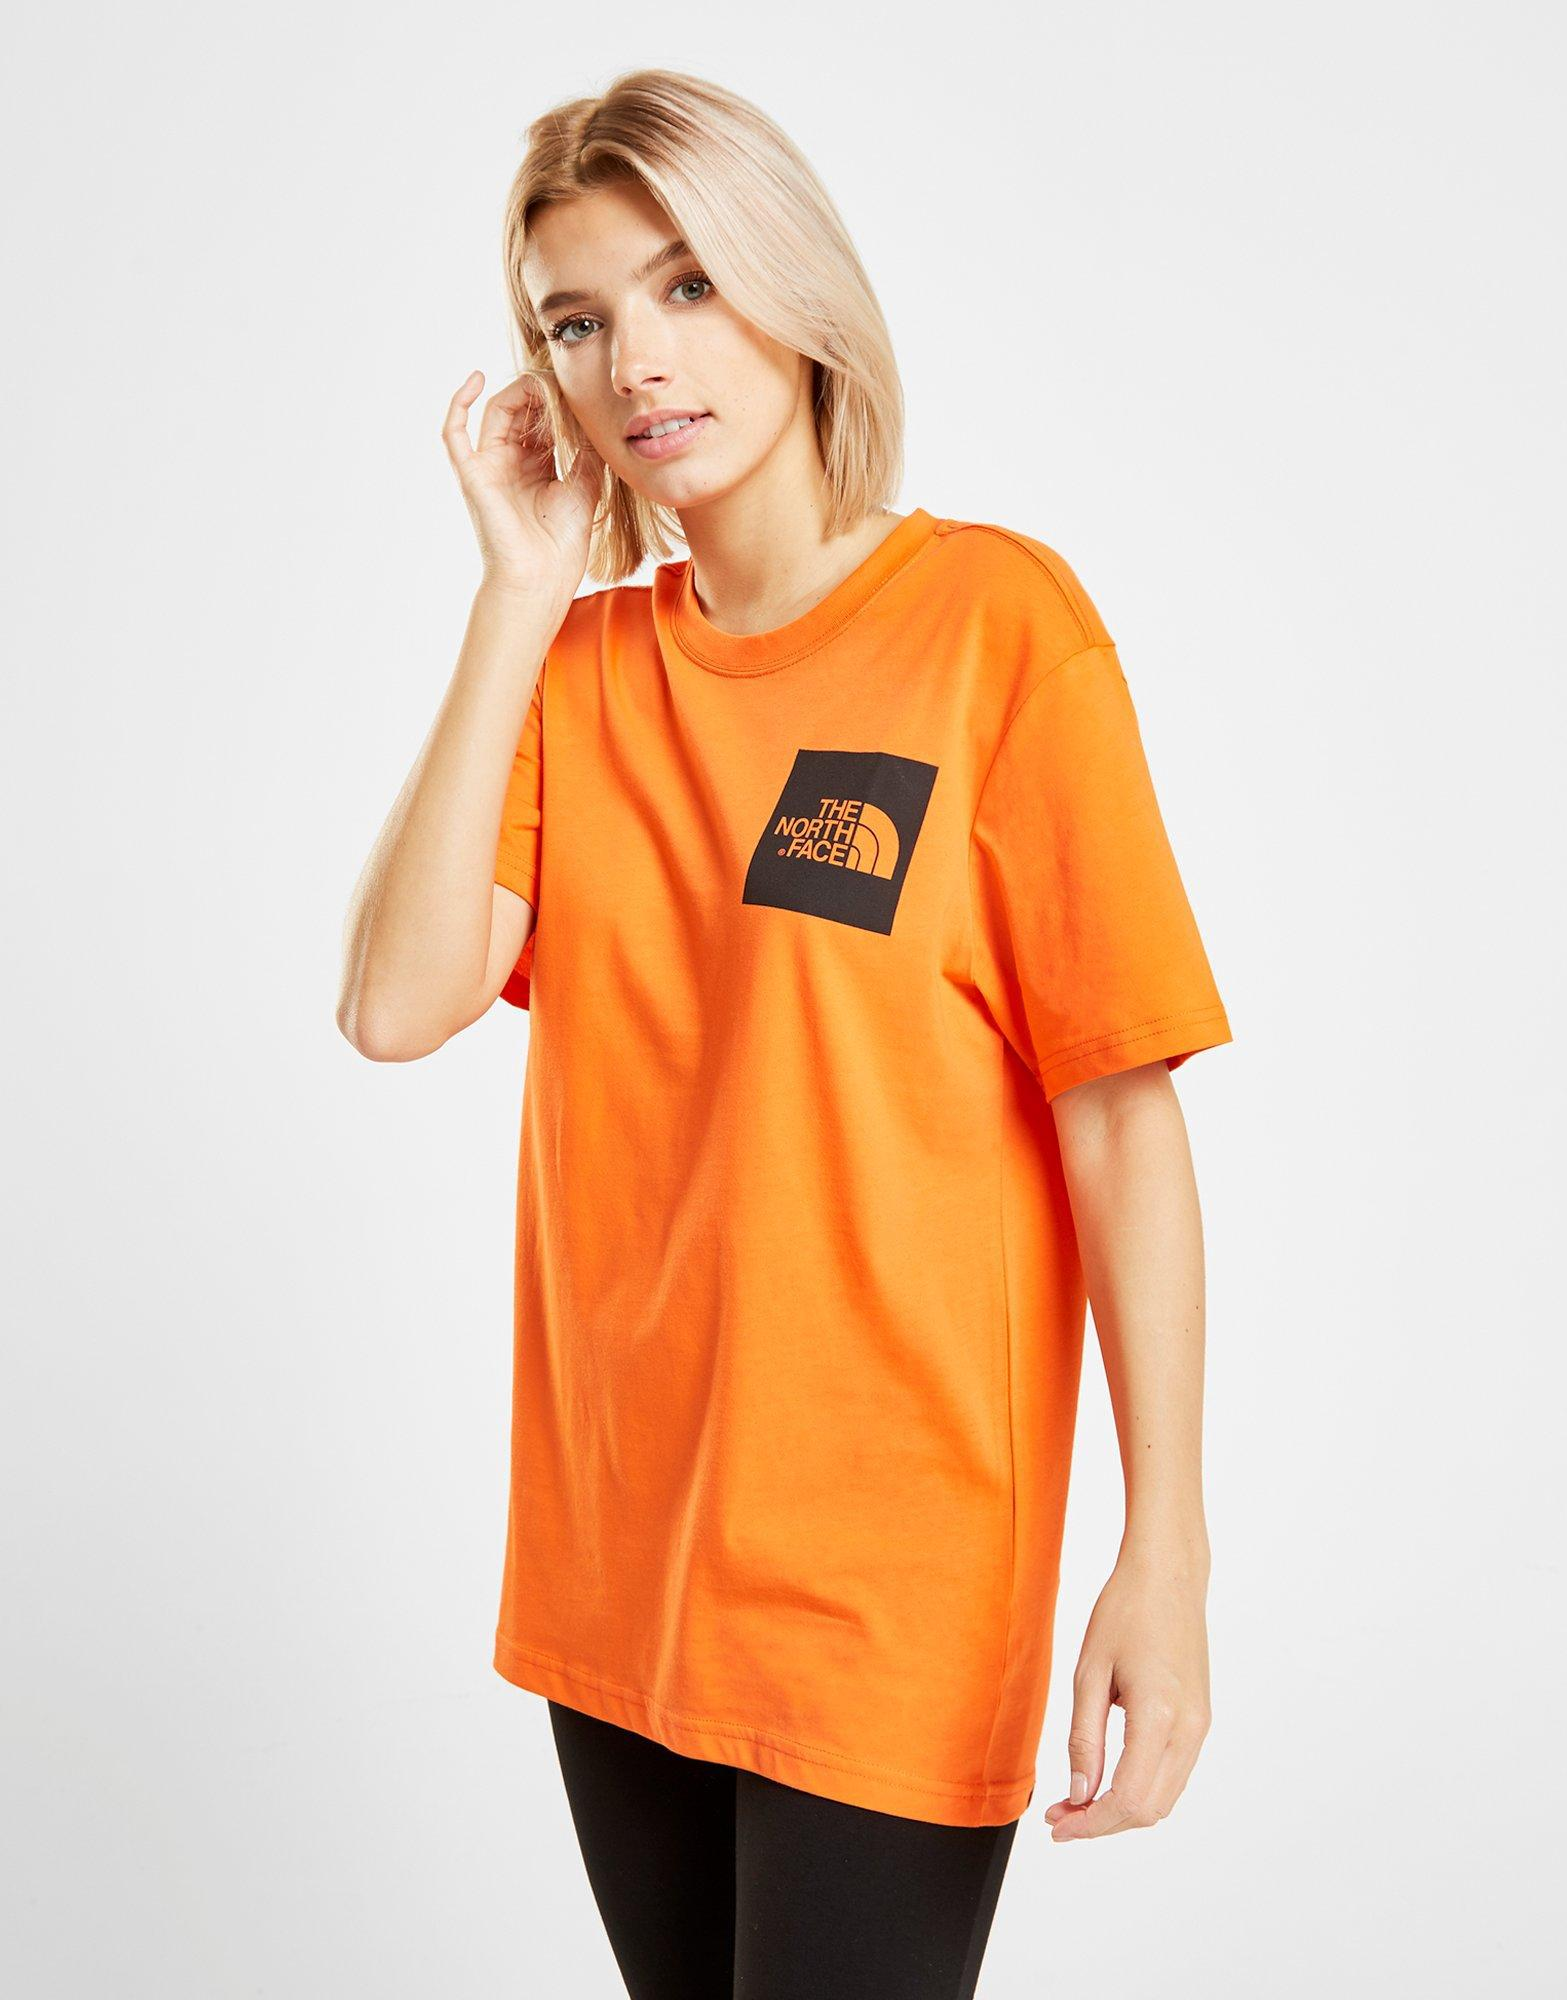 d0df98b5 Lyst - The North Face Box T-shirt in Orange - Save 28.57142857142857%